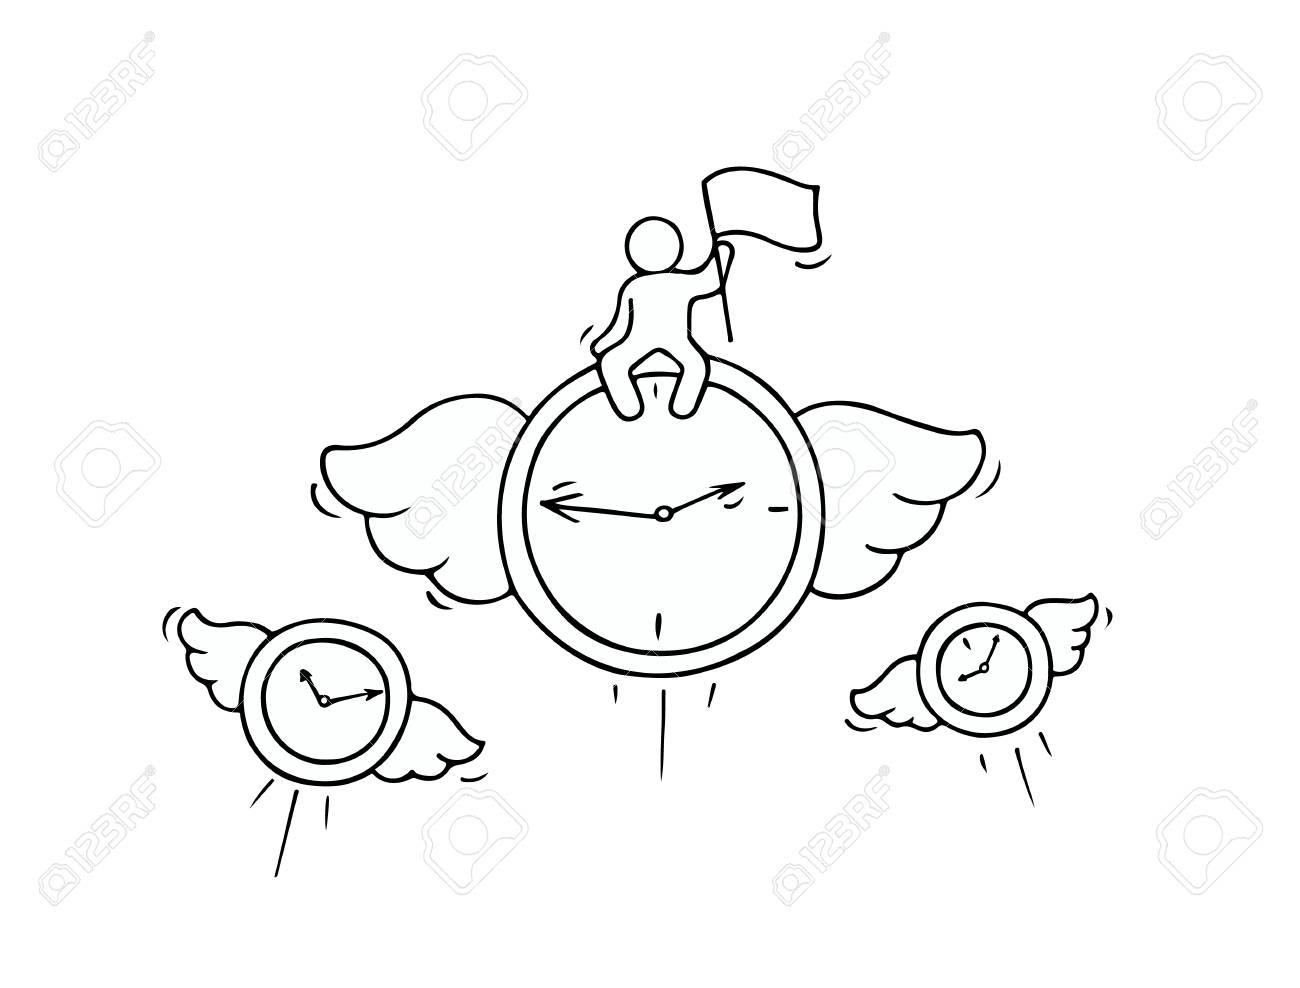 Sketch Of Flying Clocks With Little Worker Doodle Cute Miniature